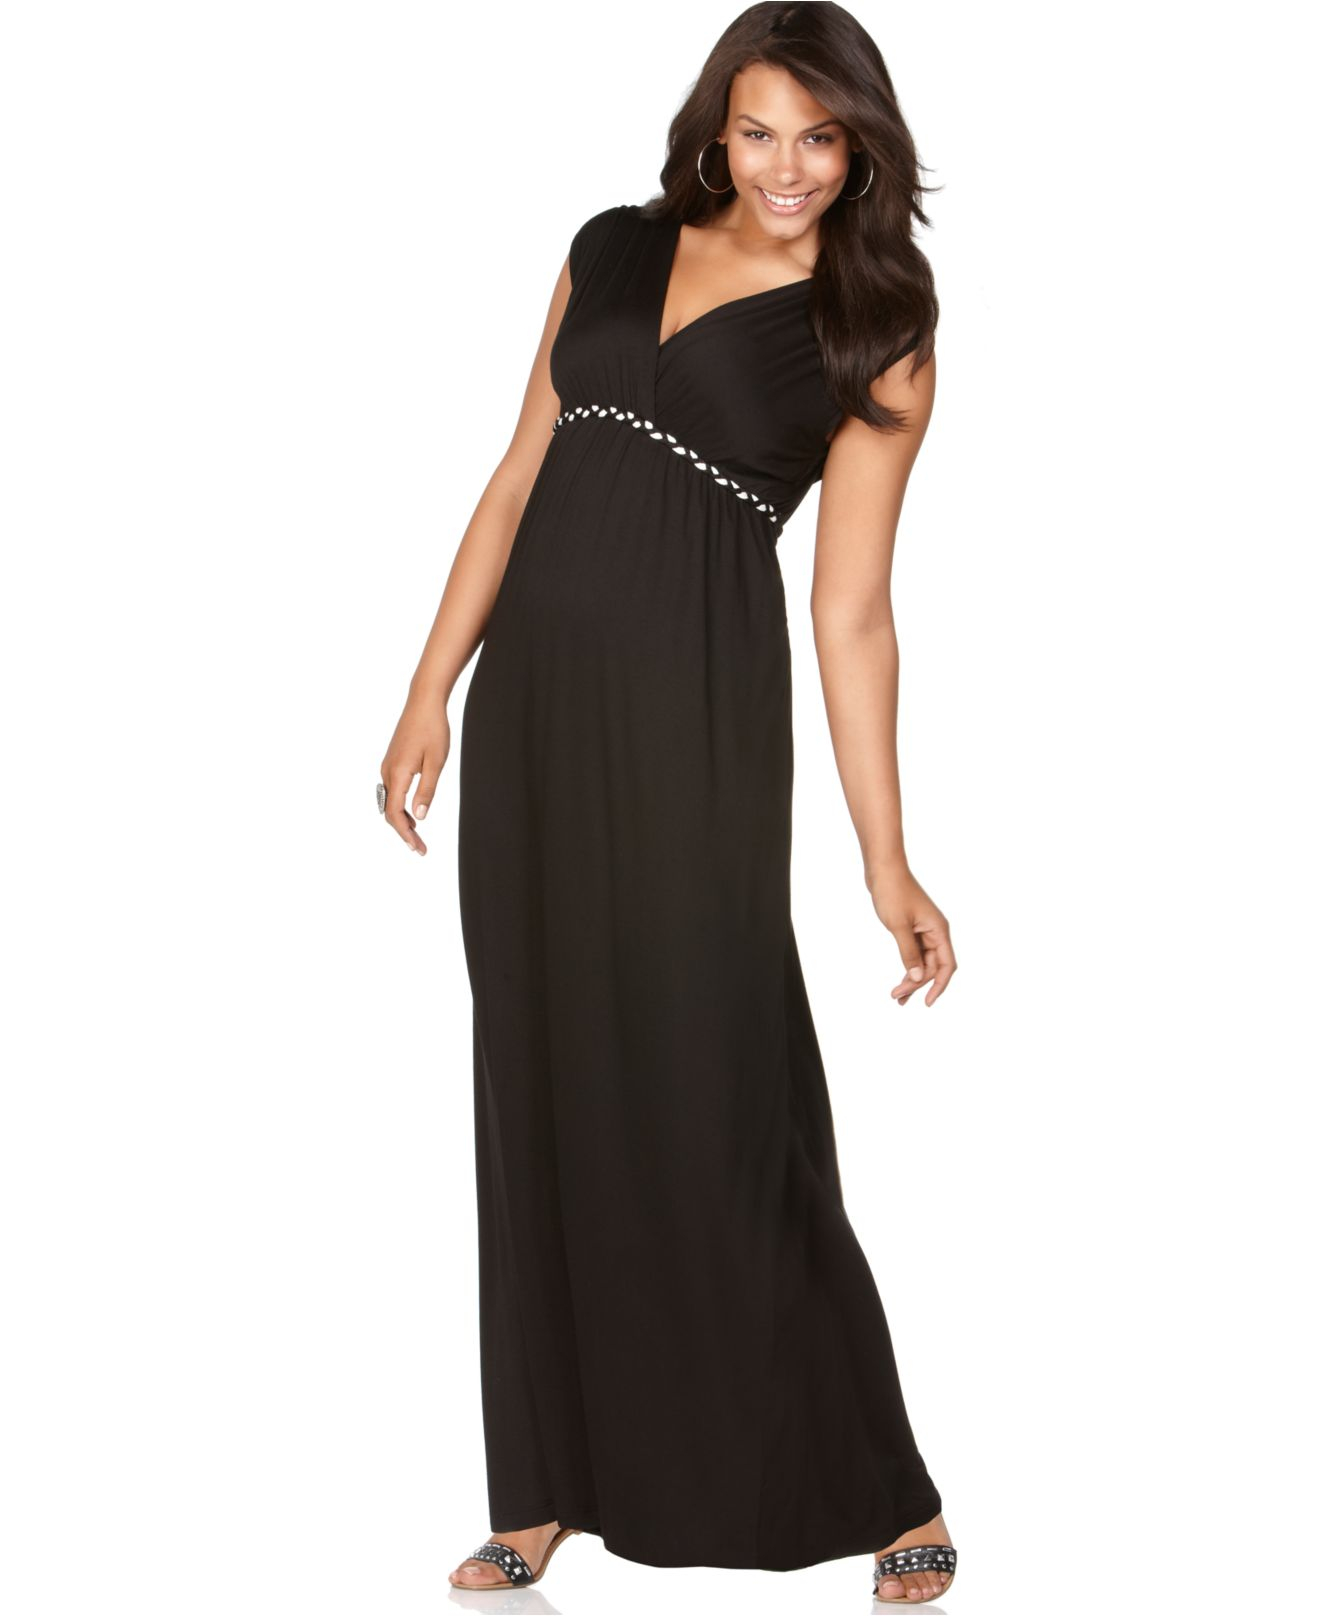 Soprano Plus Size Cap-sleeve Braided Empire Maxi Dress in Black - Lyst